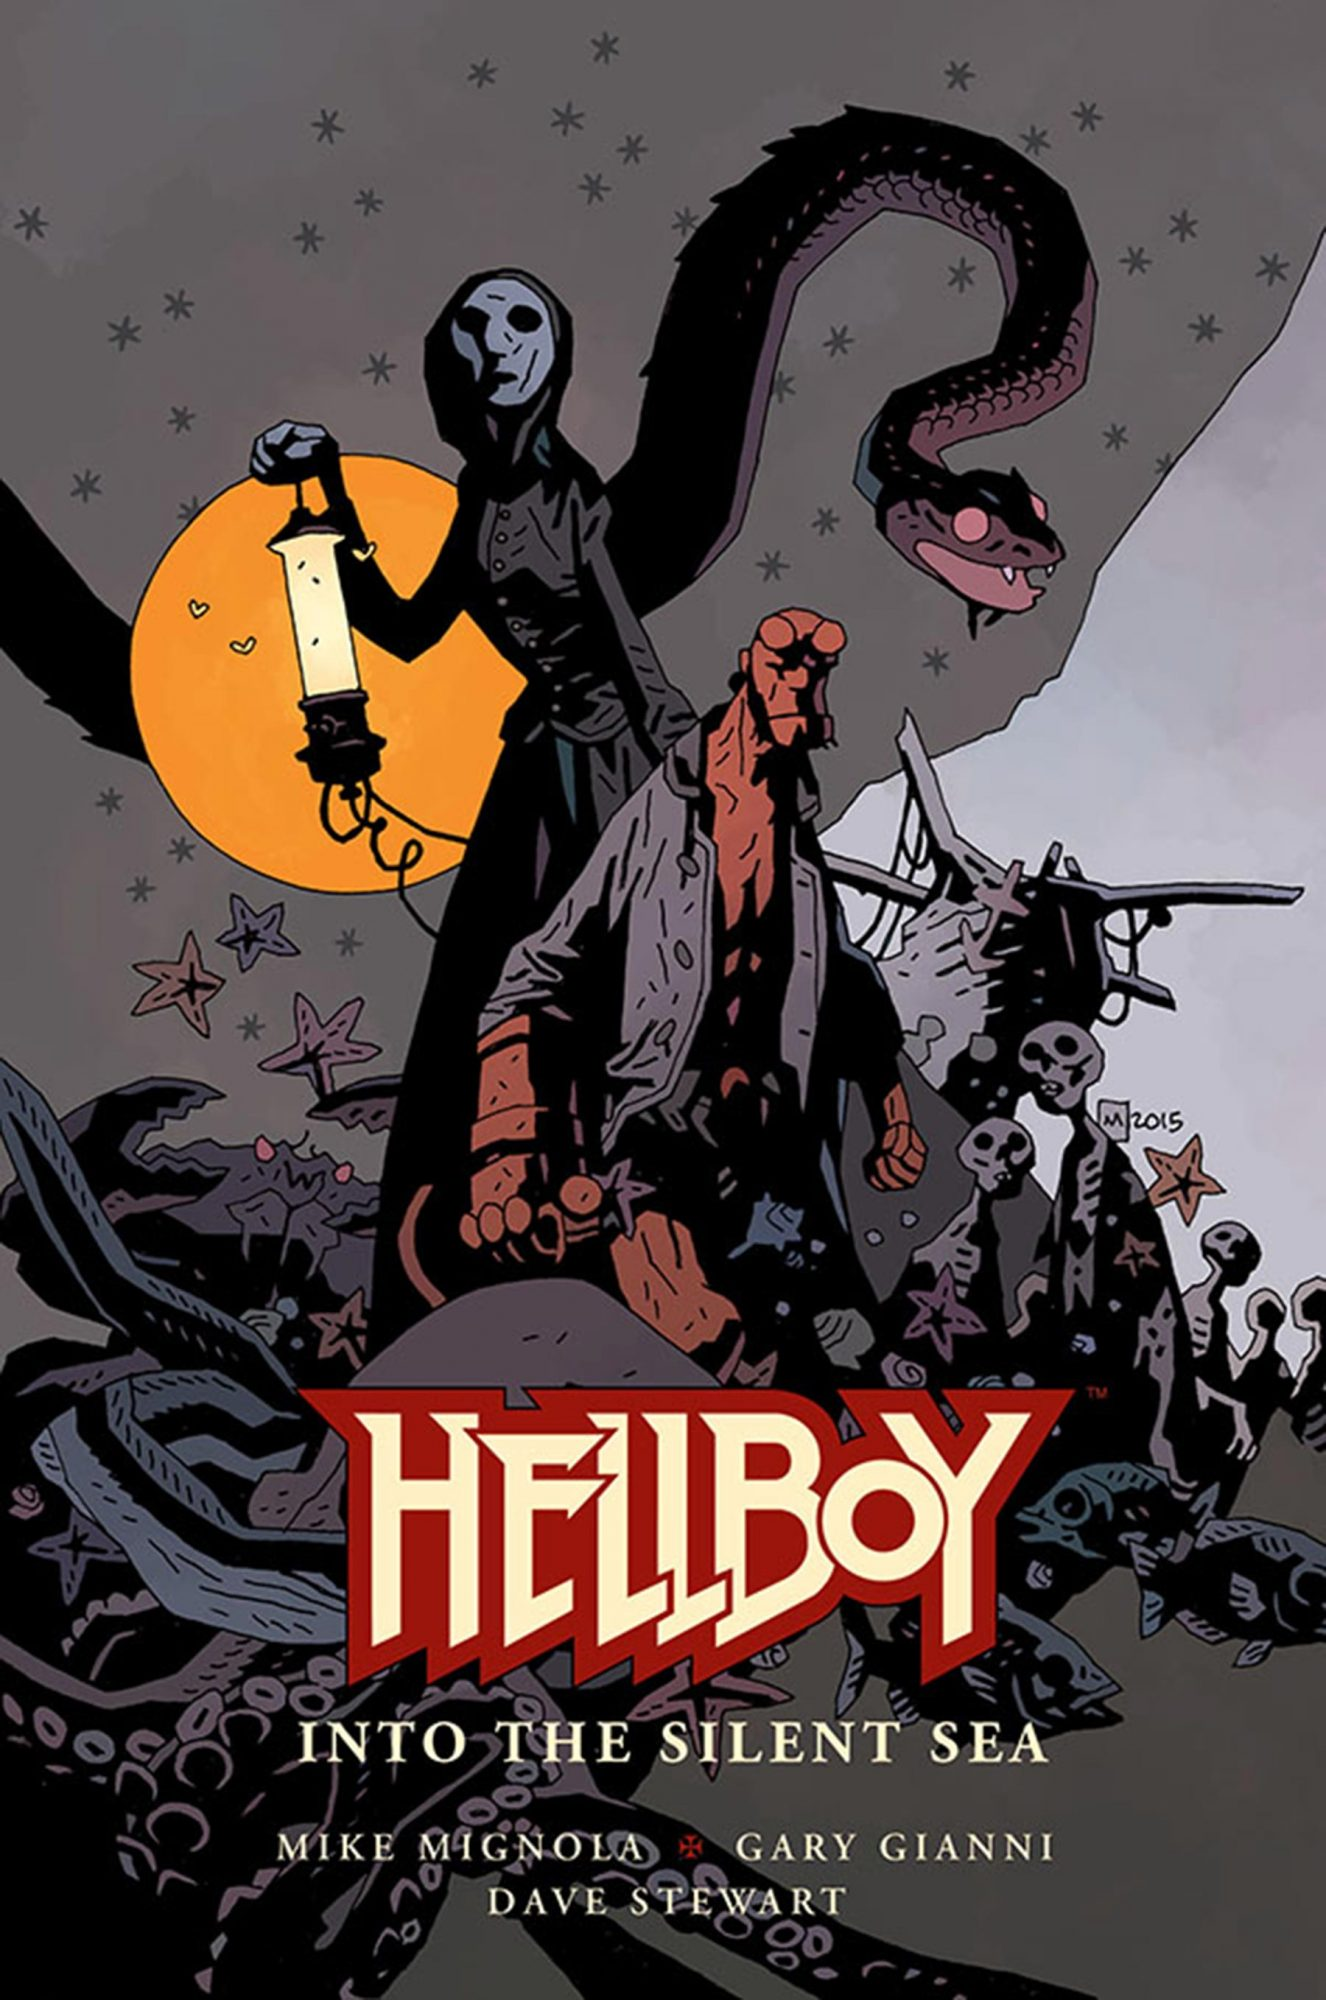 Hellboy Into the Silent Sea comic